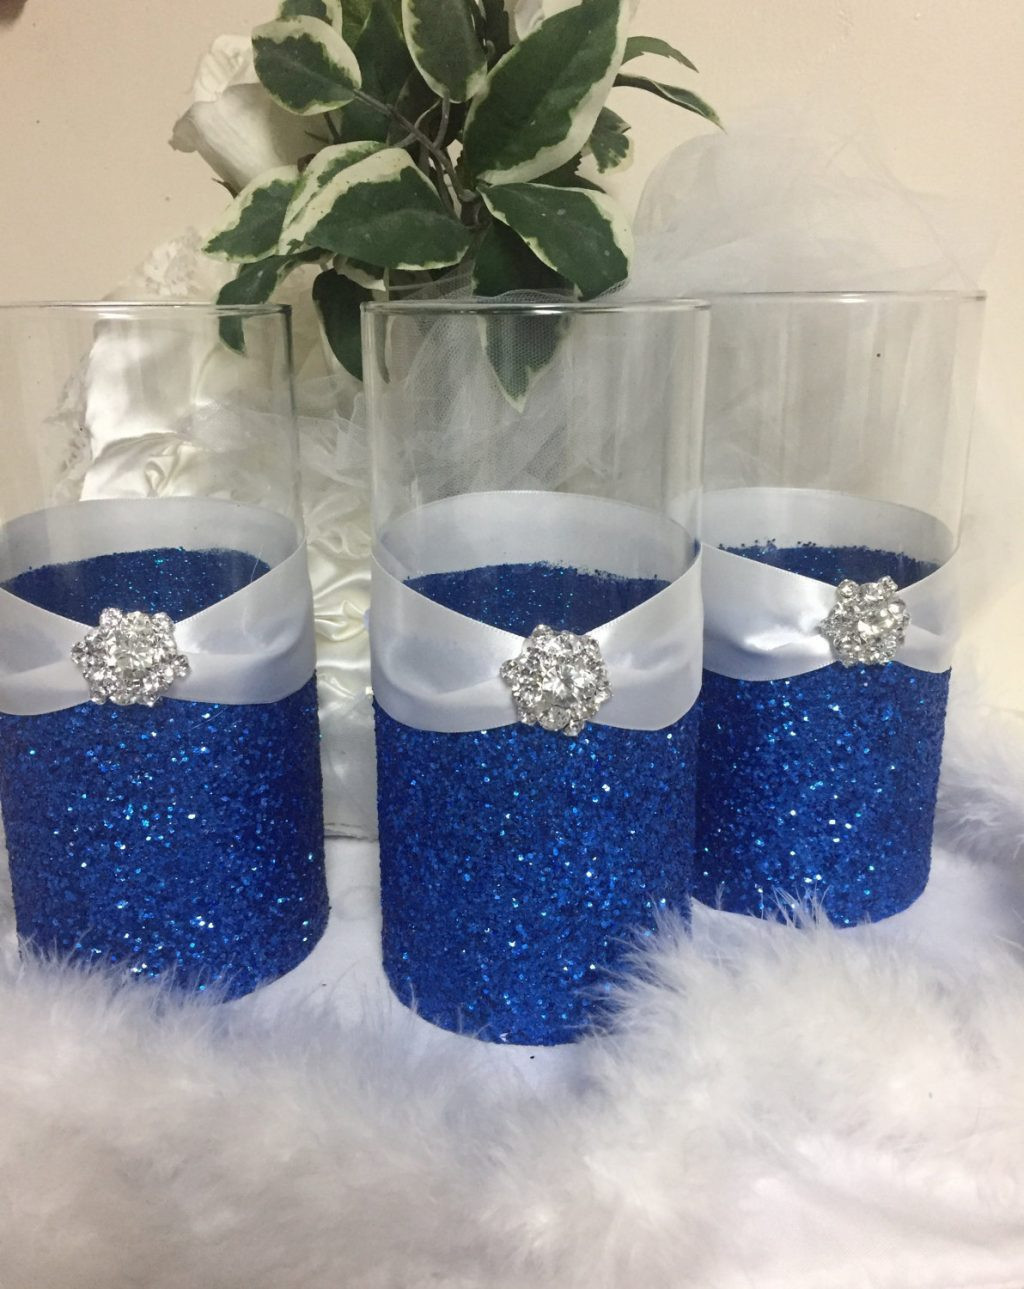 Small Yellow Vase Of Blue Decorative Vases Images Tallh Vases Glitter Vase Centerpiece In Blue Decorative Vases Images Tallh Vases Glitter Vase Centerpiece Diy Vasei 0d Ball for Design